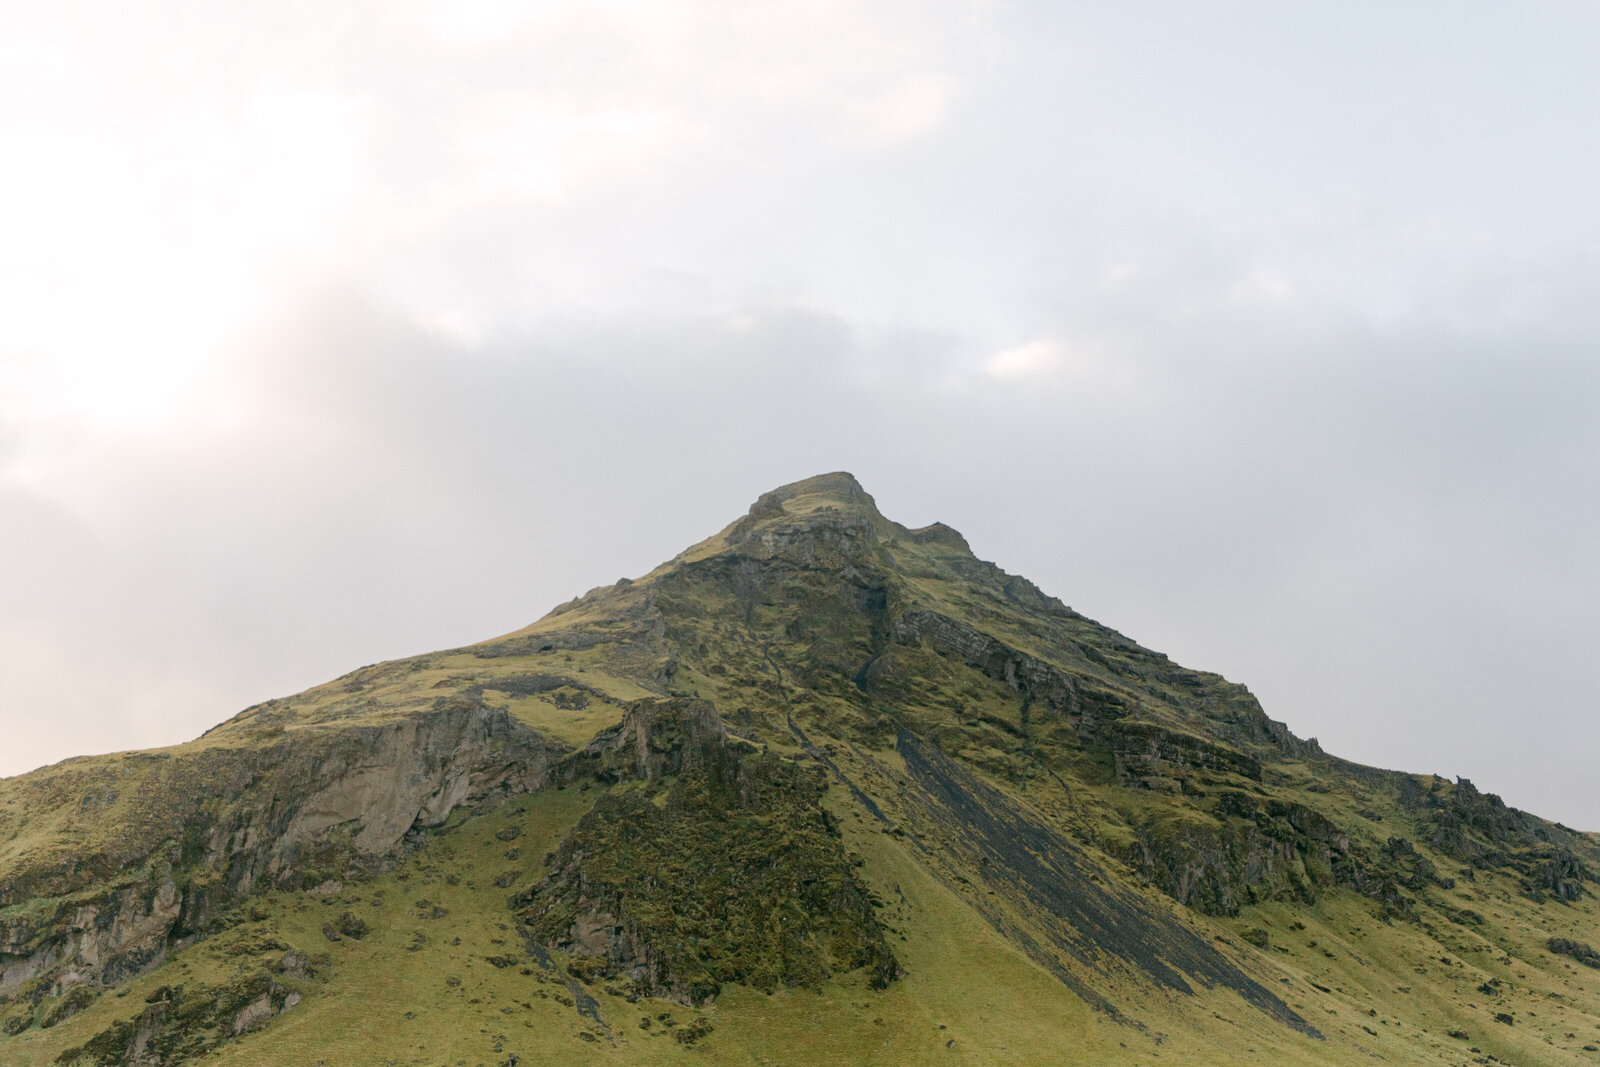 iceland mountain with green and rock